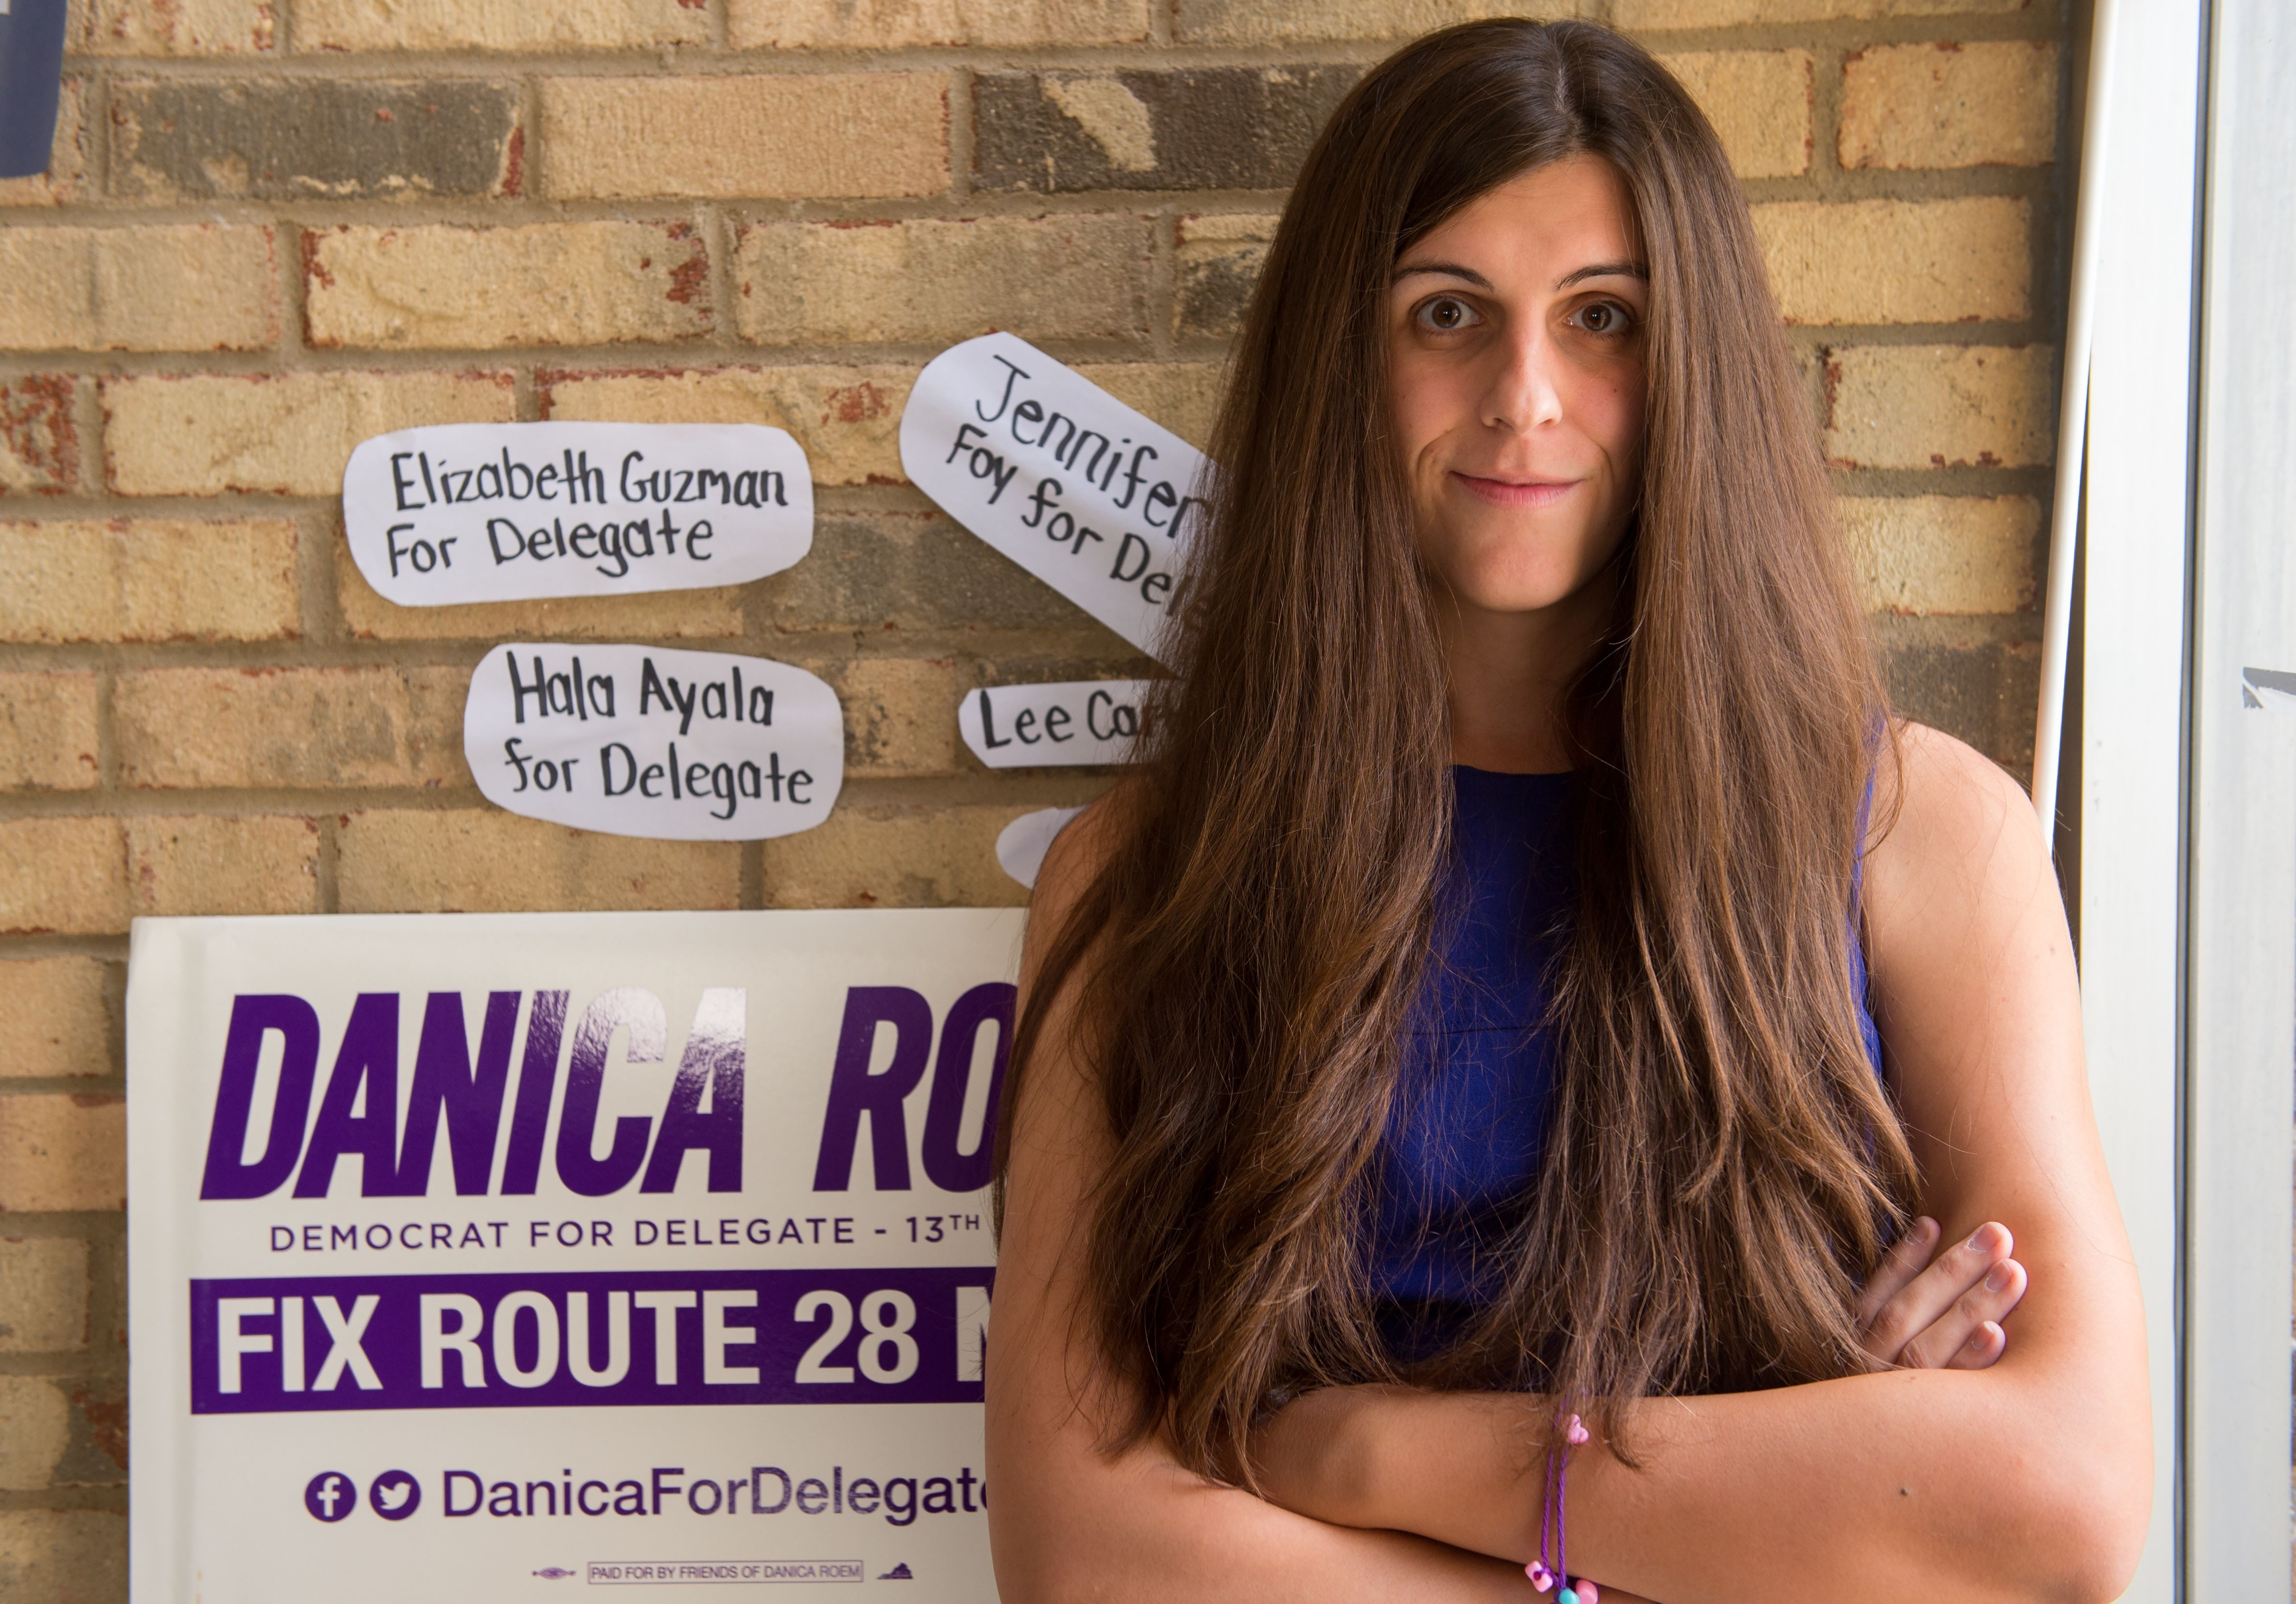 "Danica Roem, a Democrat for Delegate in Virginia's district 13, and who is transgender, sits in her campaign office on September 22, 2017, in Manassas, Virginia. - ""Look at the inside of my shoe, ok?"" replies Danica Roem when asked how many voters she has already approached in her bid to win a Virginia statehouse seat.The Democratic candidate has no time for subtleties as she races to become the first openly transgender person elected to office in this Republican US state. Whether spitting in the trashcan during a recent interview with Cosmopolitan magazine or whipping off her ballerina flat to show its worn insole to AFP, this young woman does not shy from flaunting her working-class roots. (Photo by Paul J. RICHARDS / AFP) / TO GO WITH AFP STORY -""Transgender metalhead makes historic political office bid"" (Photo credit should read PAUL J. RICHARDS/AFP via Getty Images)"